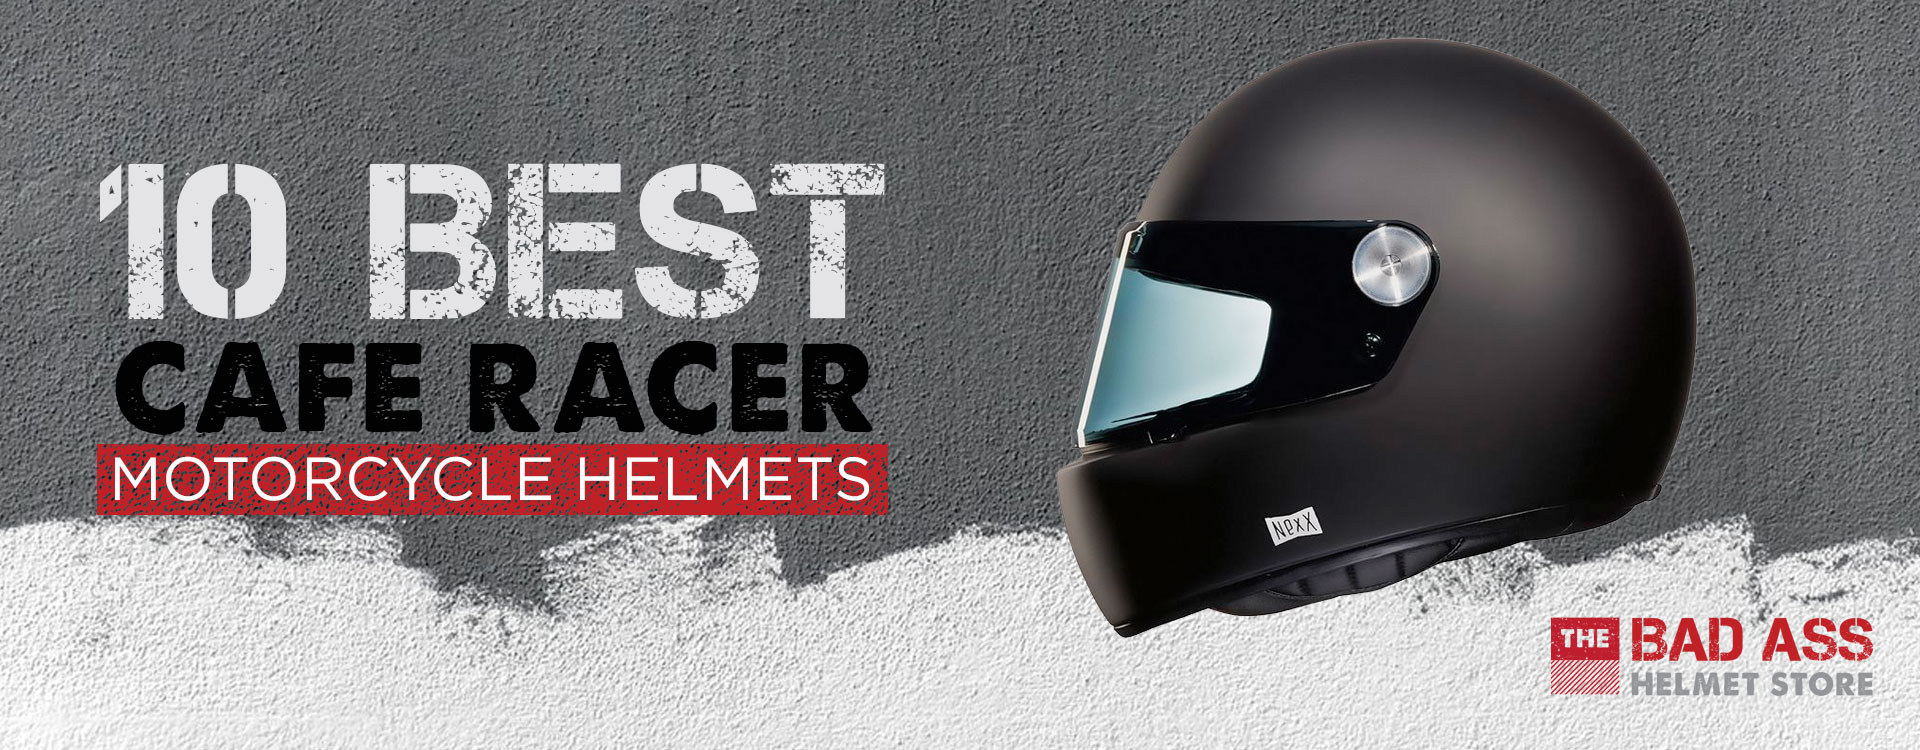 10 Best Cafe Racer Helmets